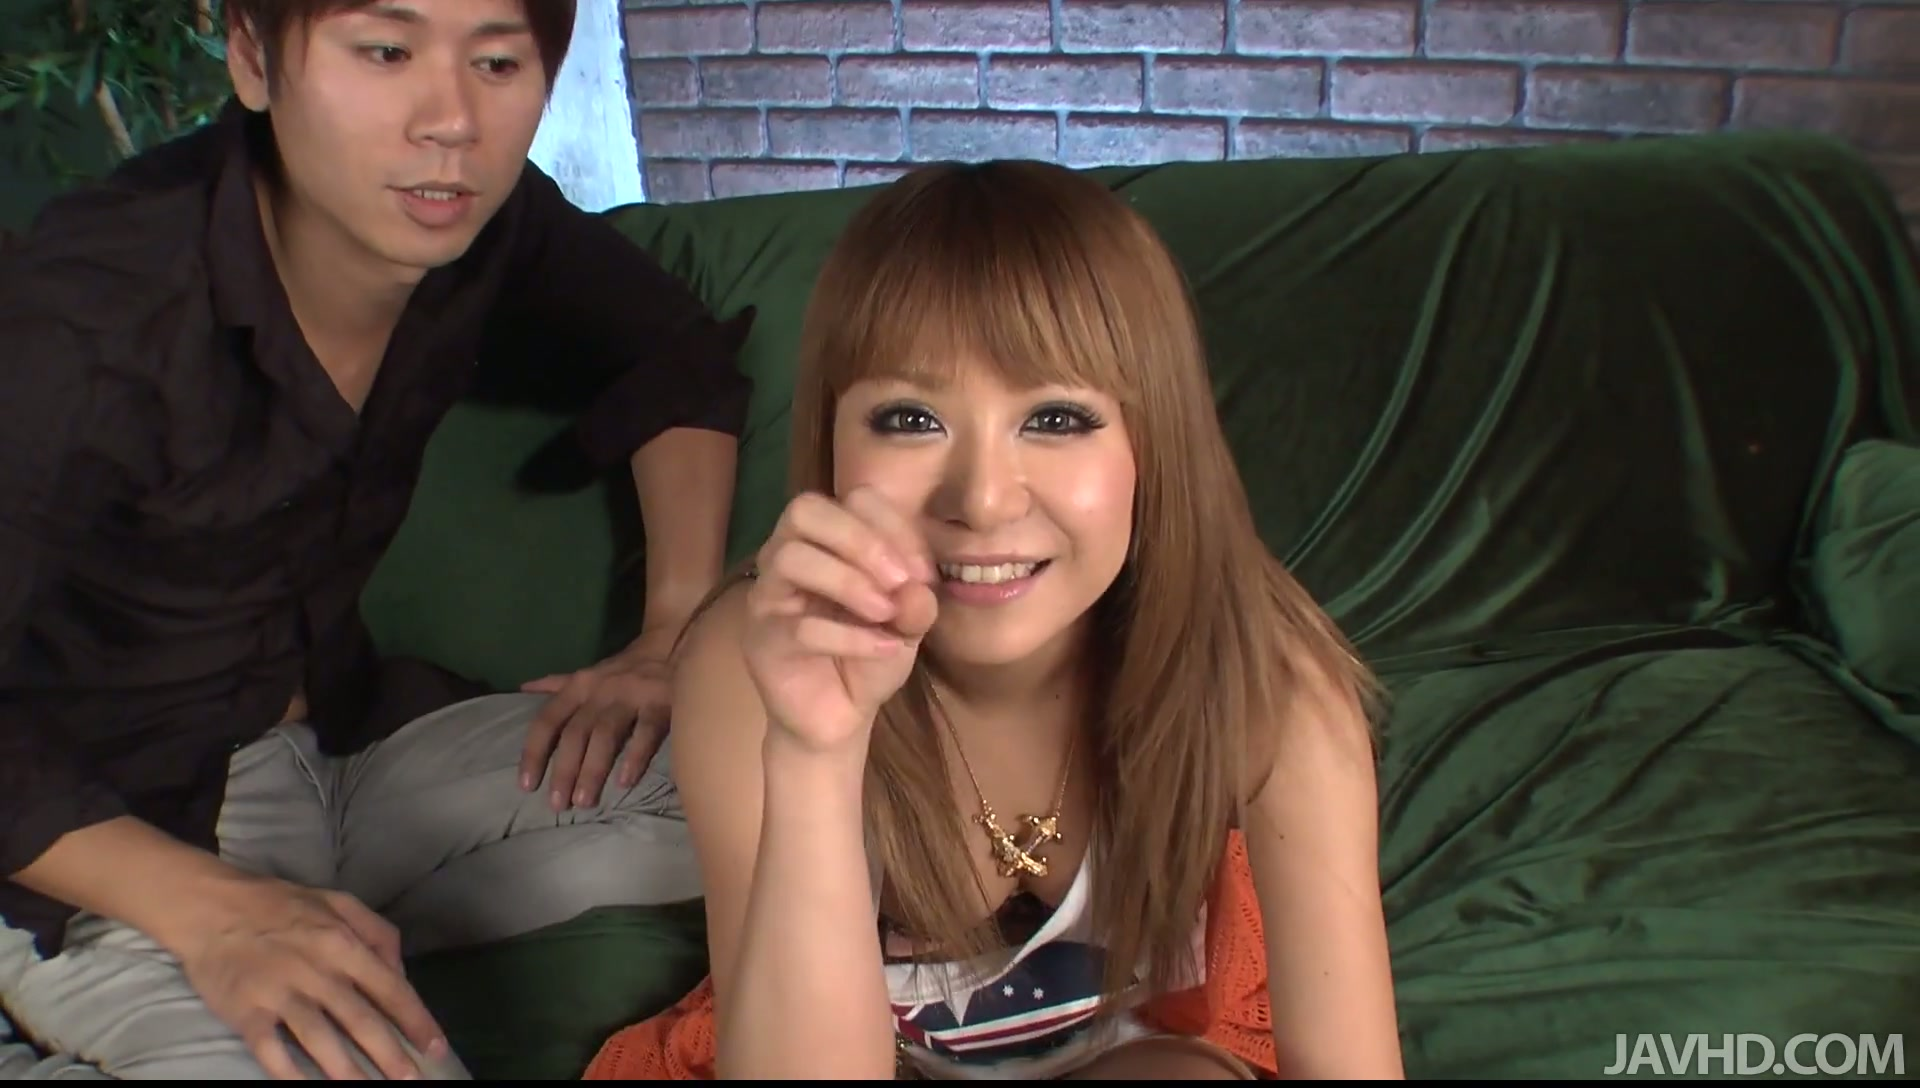 Hot Japanese teen is very proud of her new tattoo